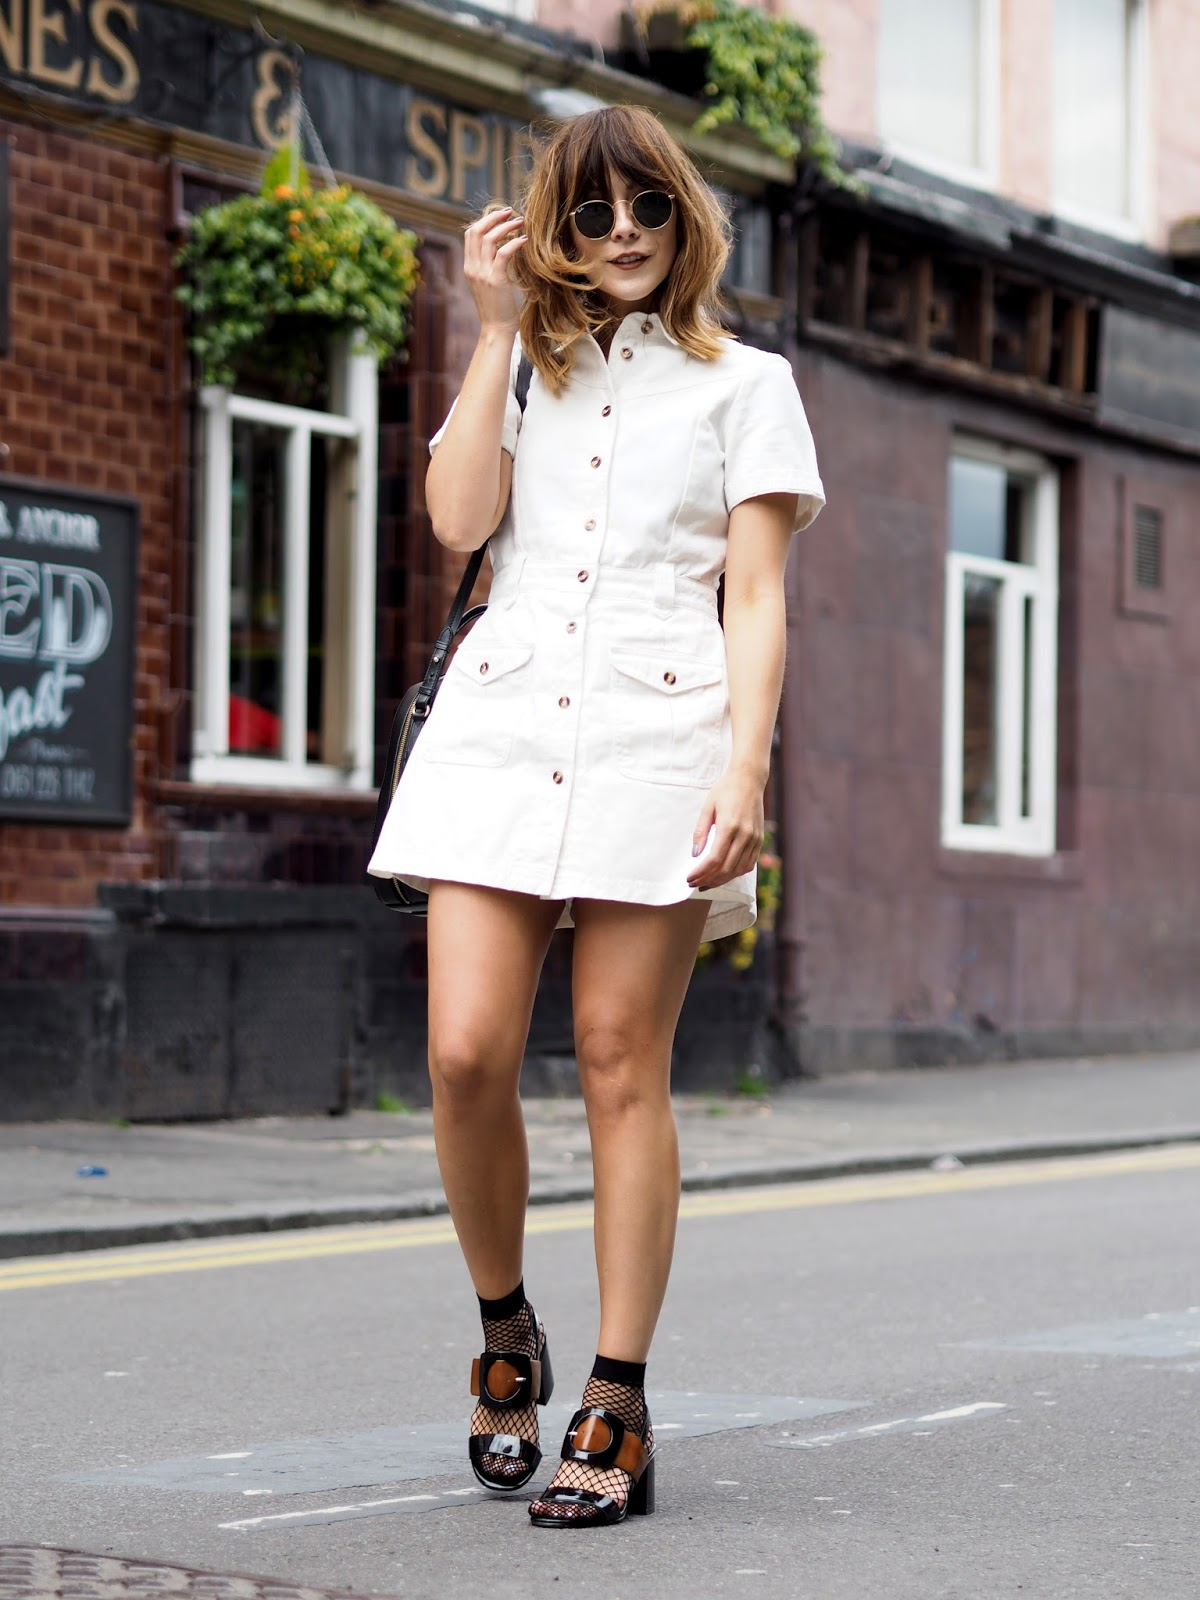 Summer Styling with Lost Ink dress at ASOS and Next Buckle Sandals